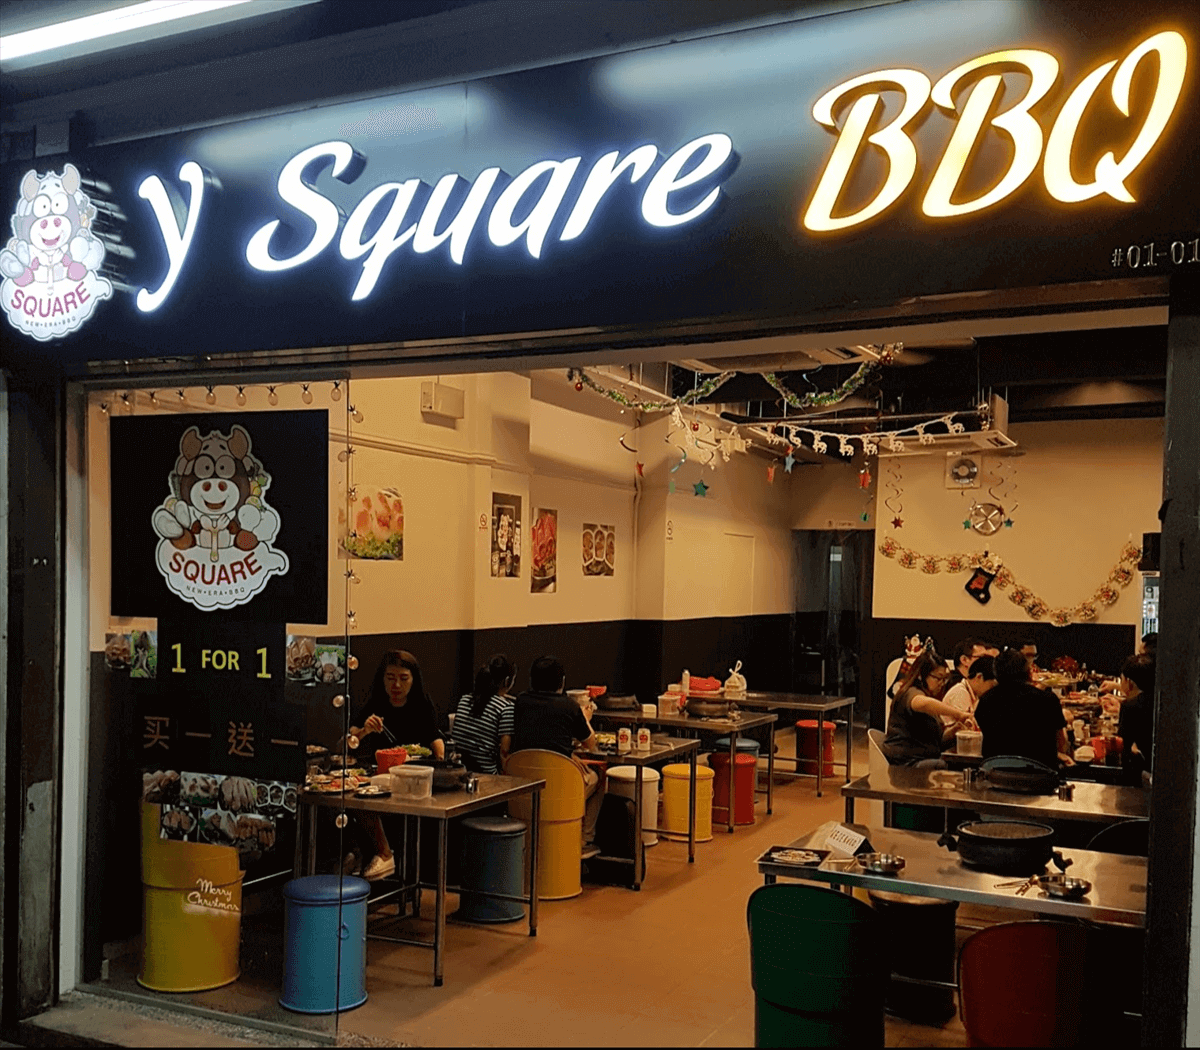 Popular And New BBQ And Steamboat Business To Take Over